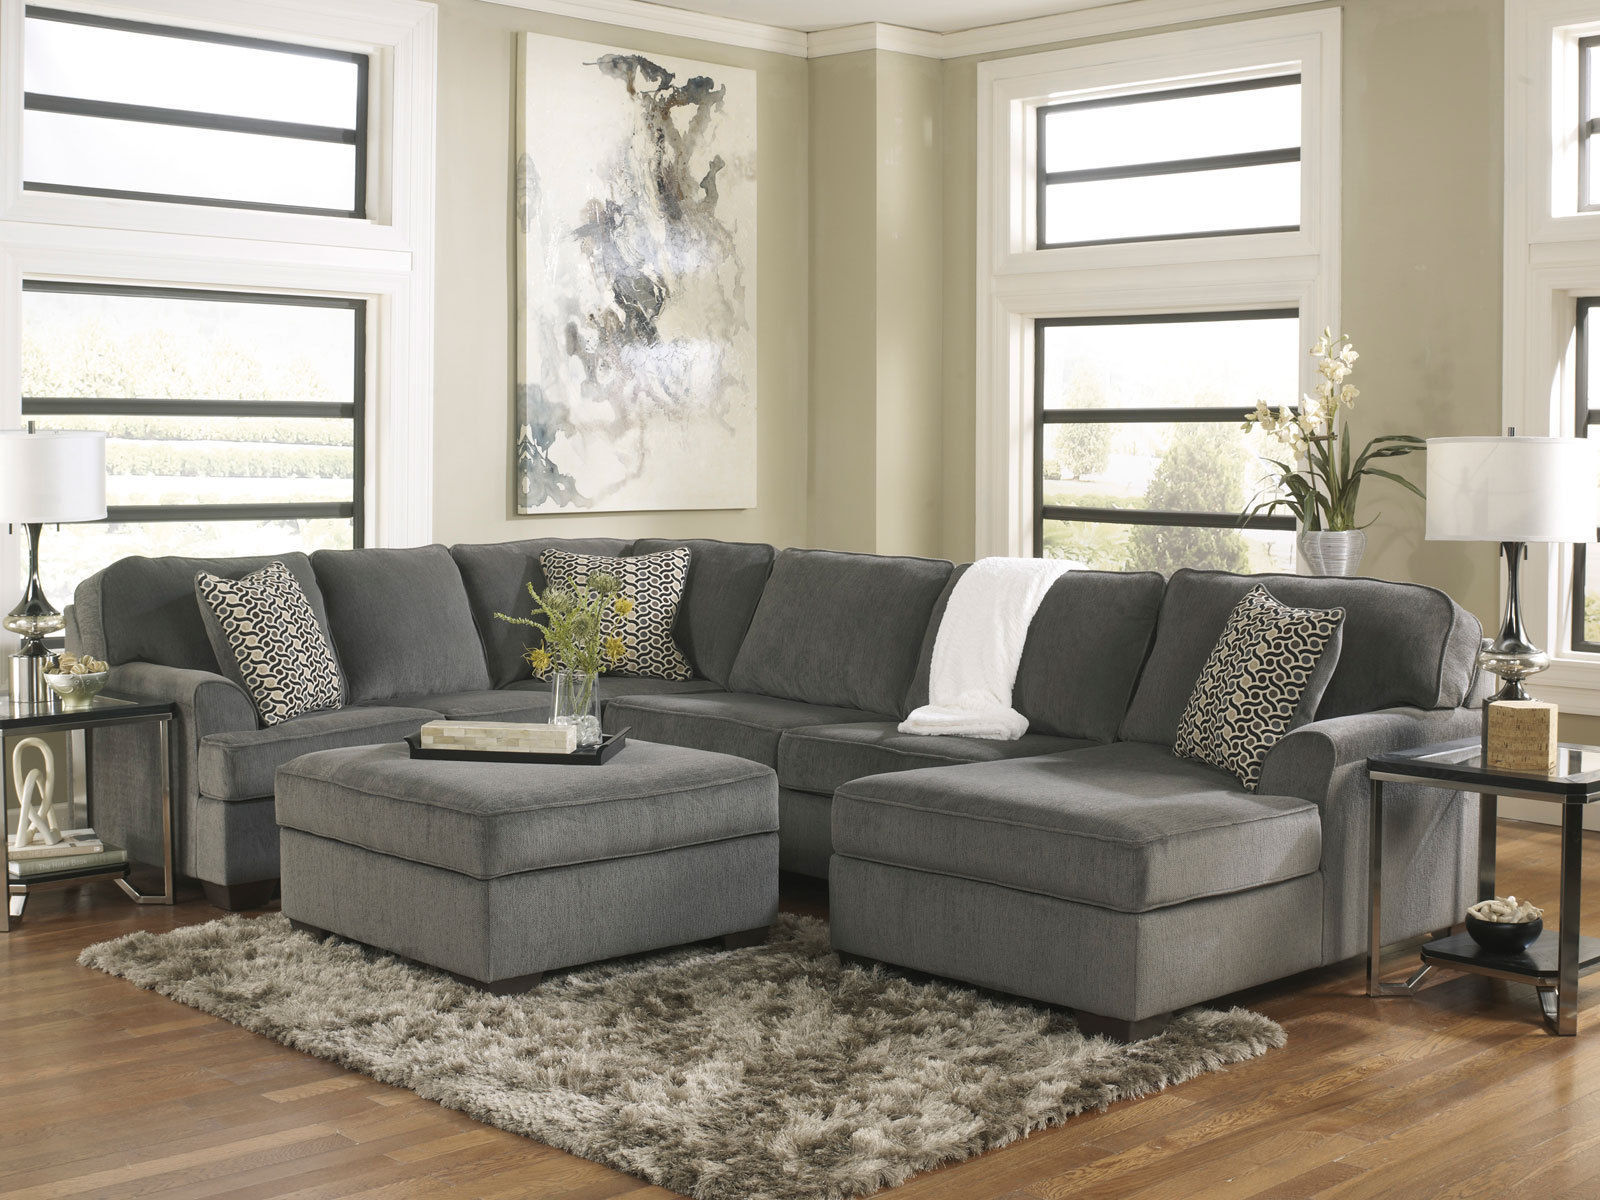 Sole oversized modern gray fabric sofa couch sectional set - Gray modern living room furniture ...